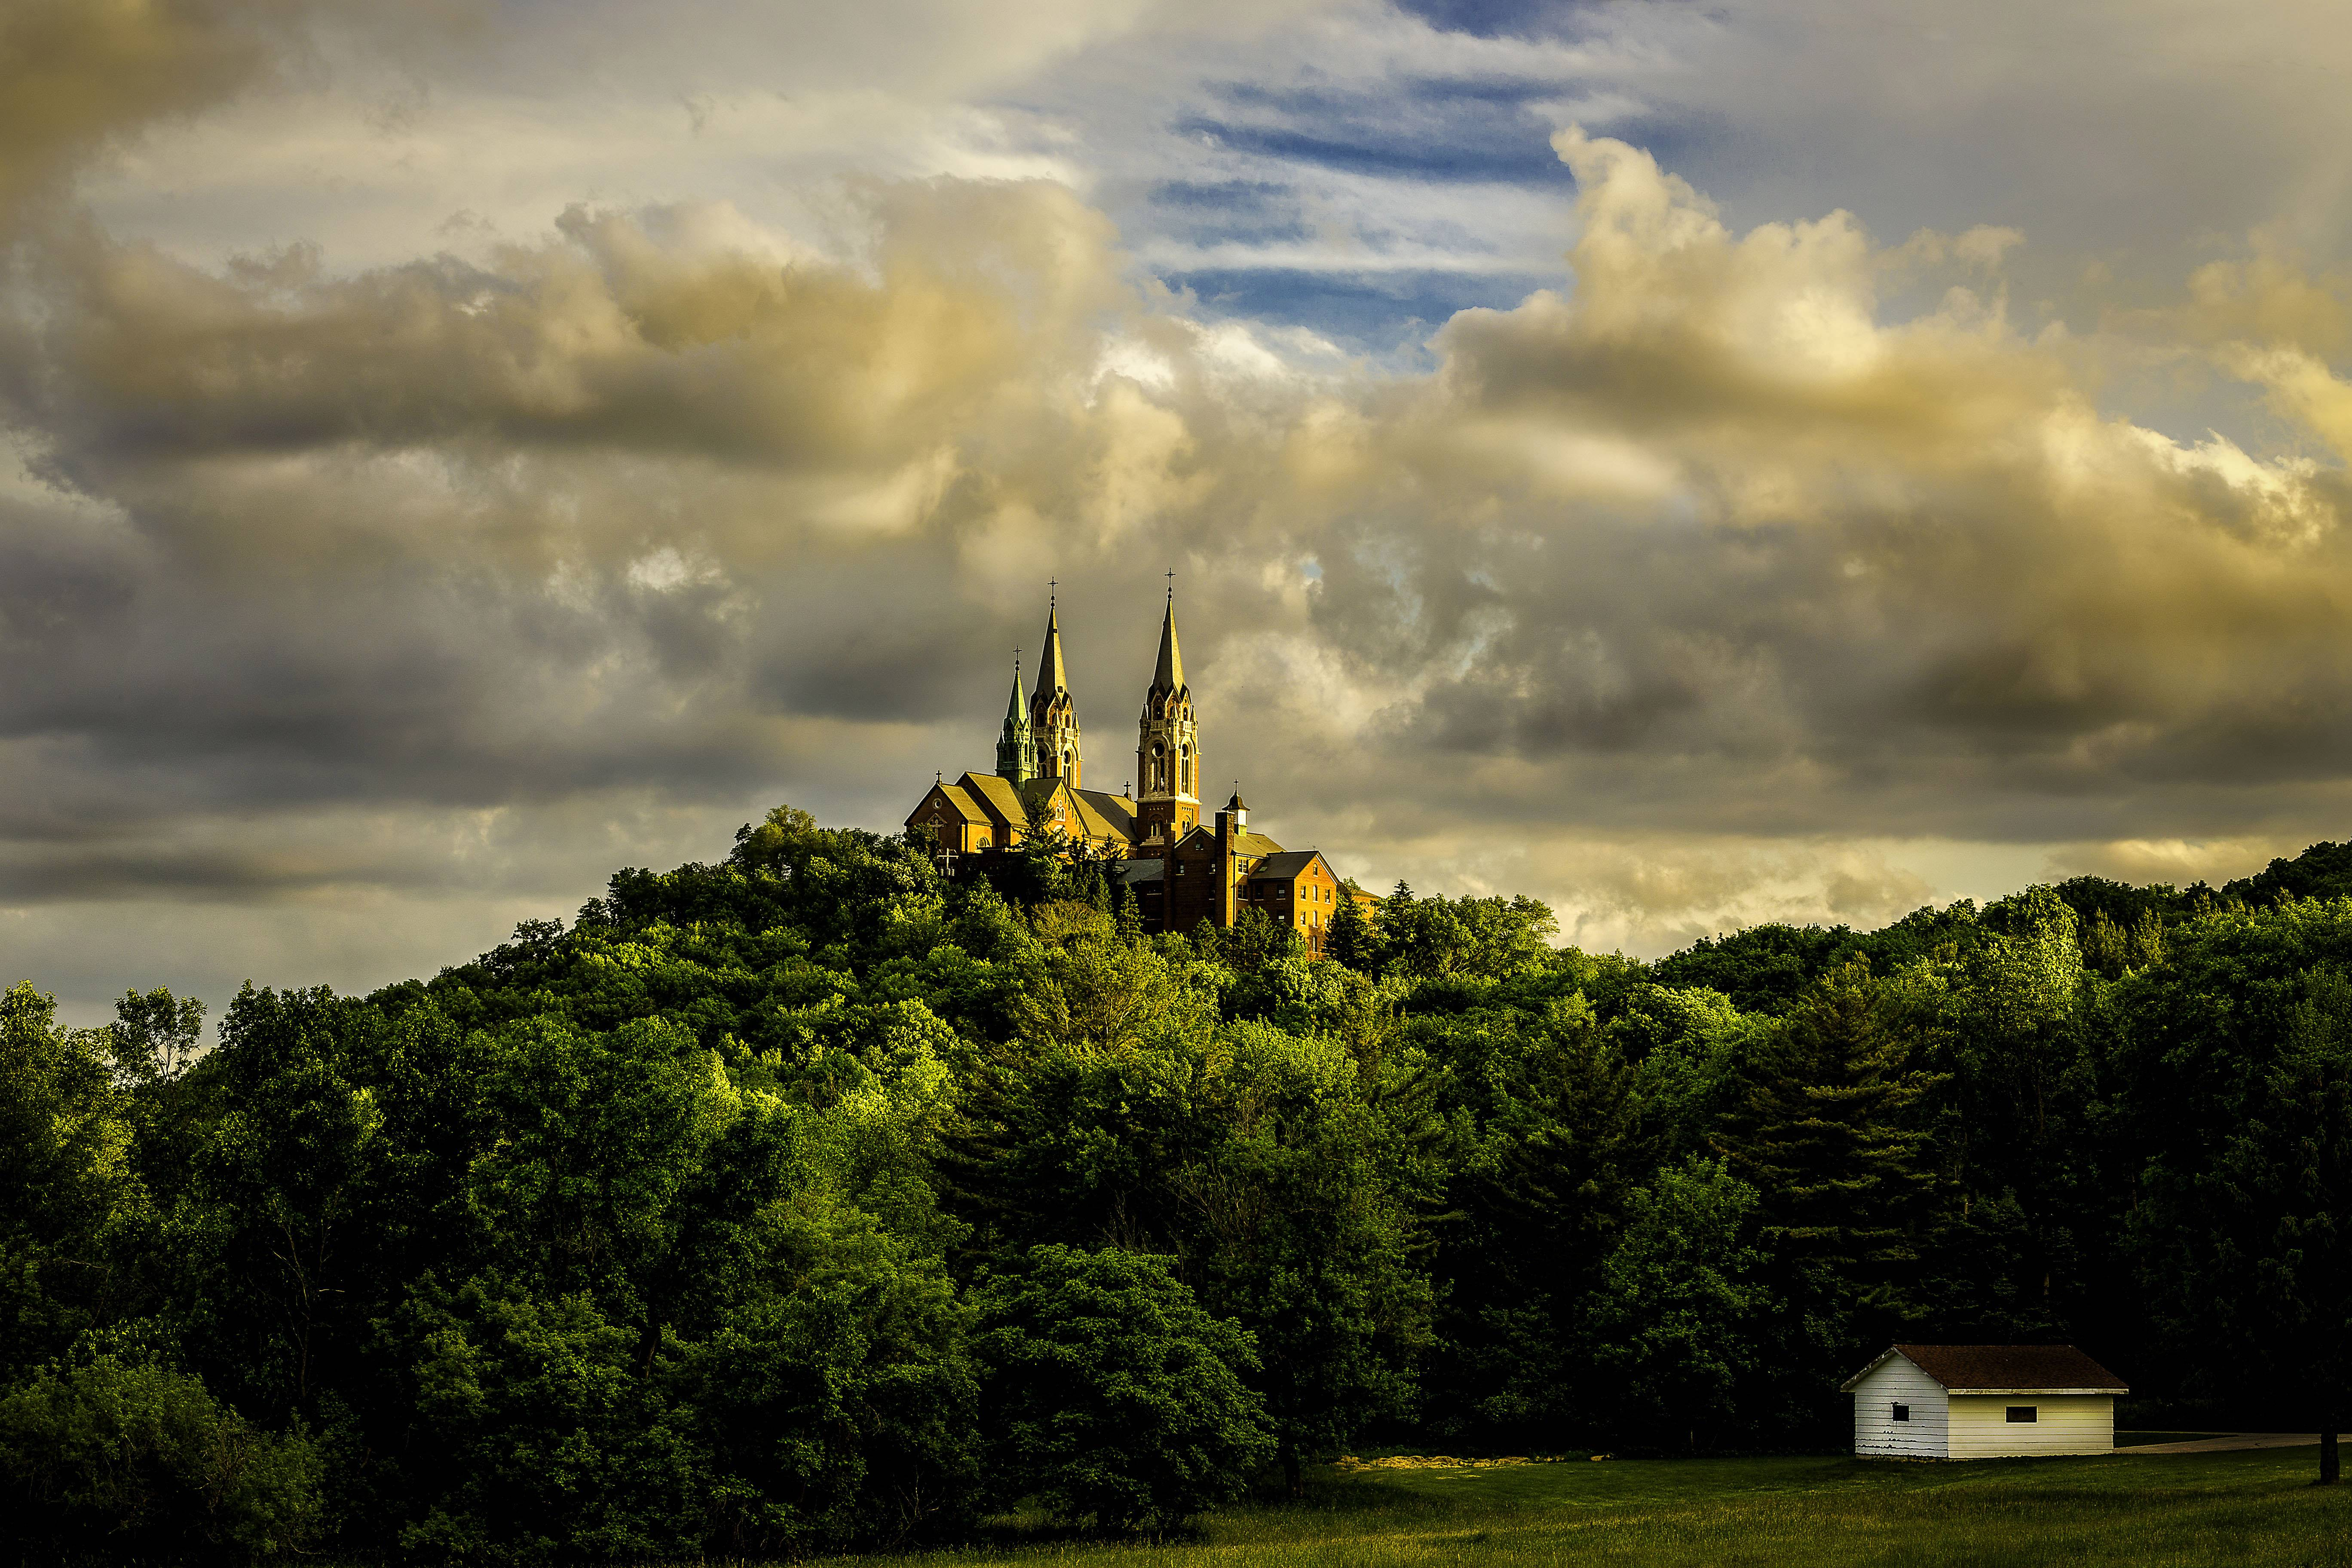 This is Holy Hill Basilica located in Hubertus Wisconsin approximately 30 miles northwest of Milwaukee. The photo was taken approximately 30 minutes before sunset during a mid-June trip I made to photograph the church interior and surrounding grounds. I shot this from a side road location about 1 mile from the structure and my original plan was to get this shot with sunrise light. I got up at 4 a.m., was on site by 4:45 a.m., but the entire grounds were completely covered with fog. I went back that evening and was blessed with beautiful sunset light.